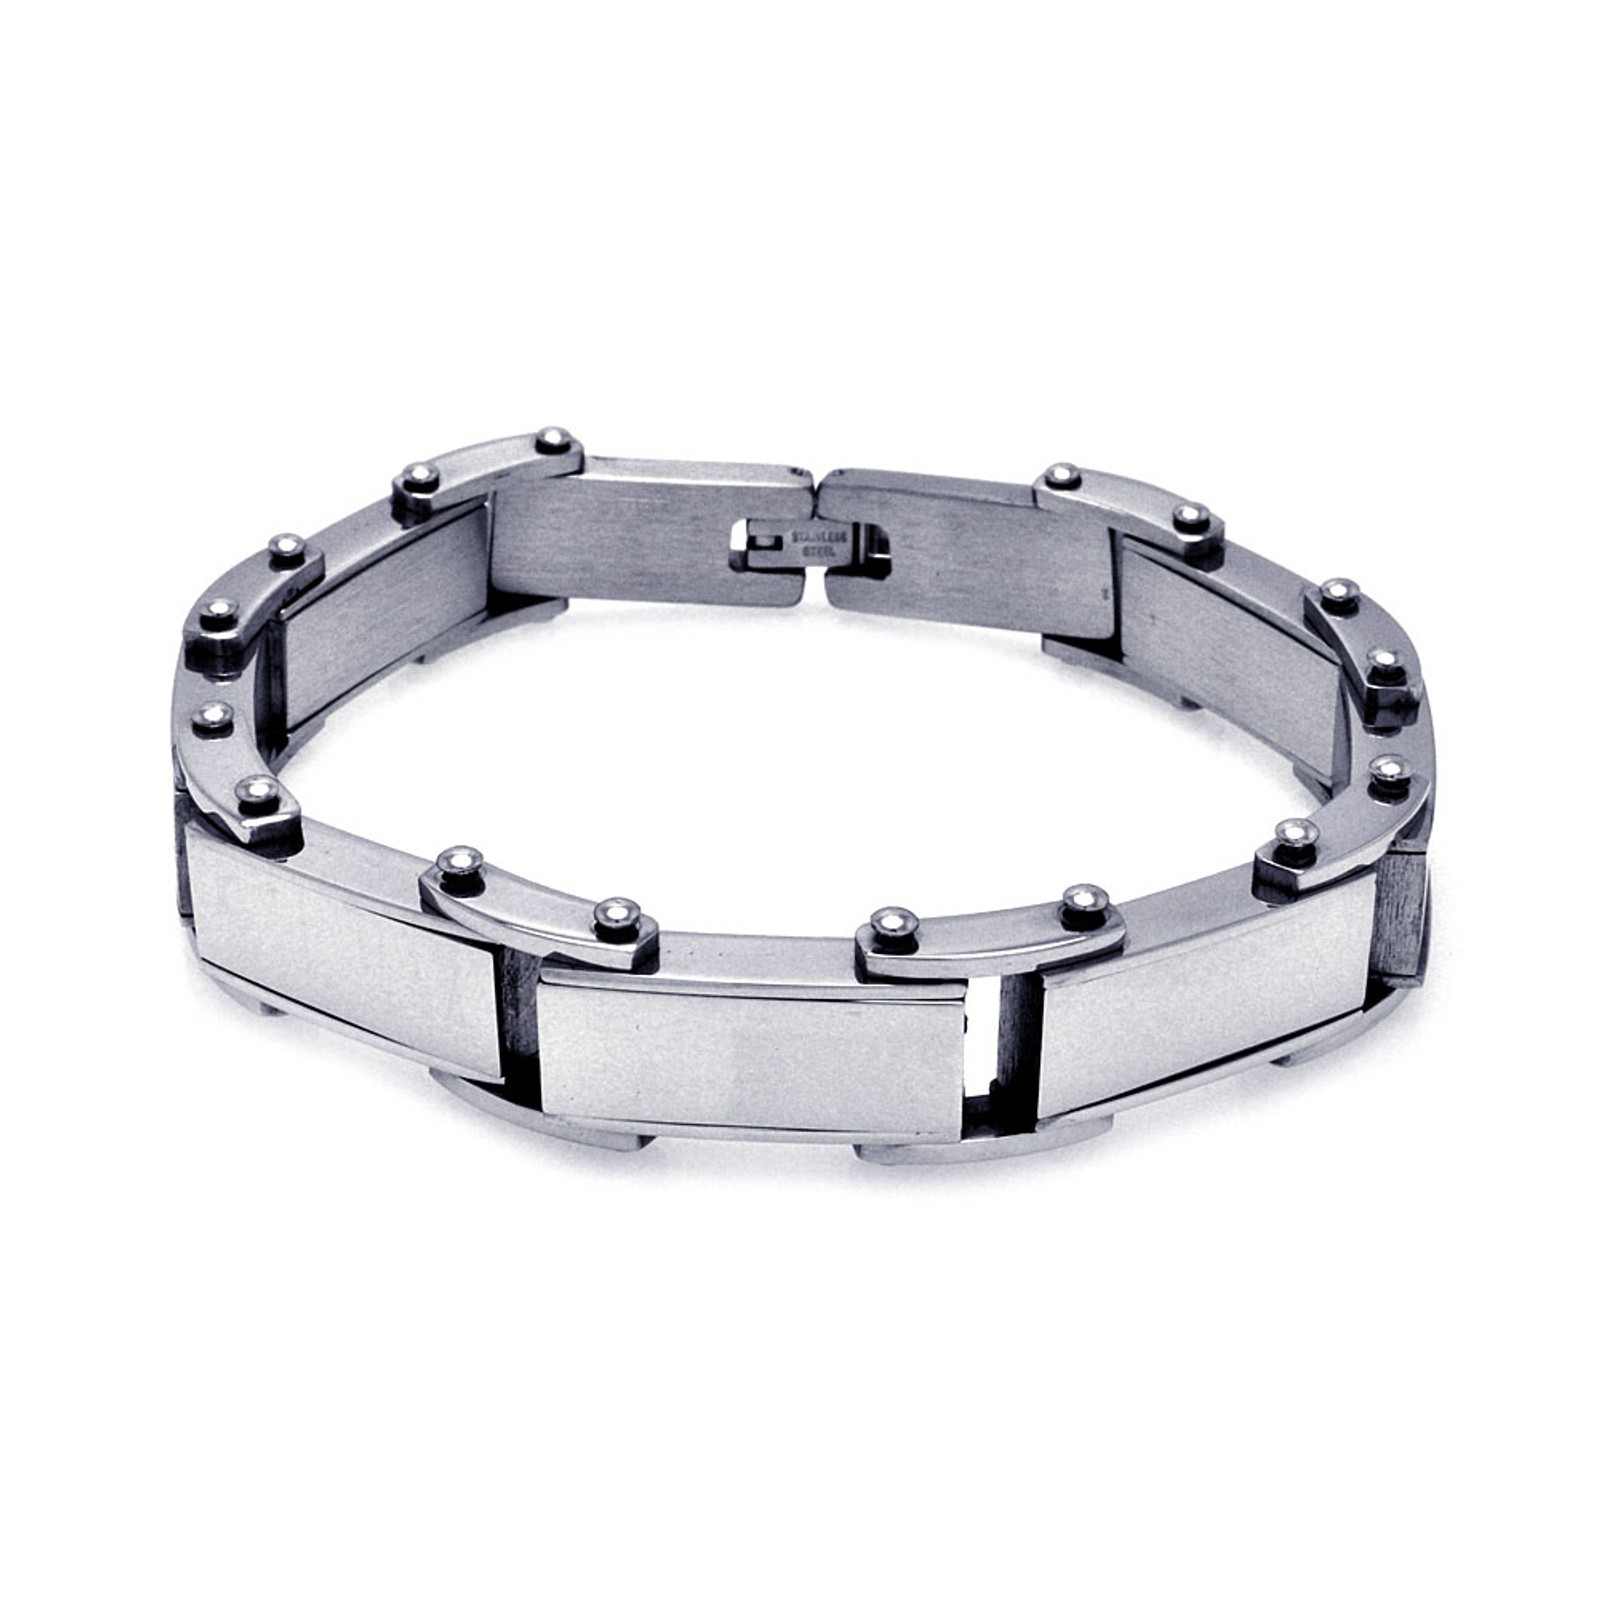 Stainless Steel Bike Chaing Design Bracelet